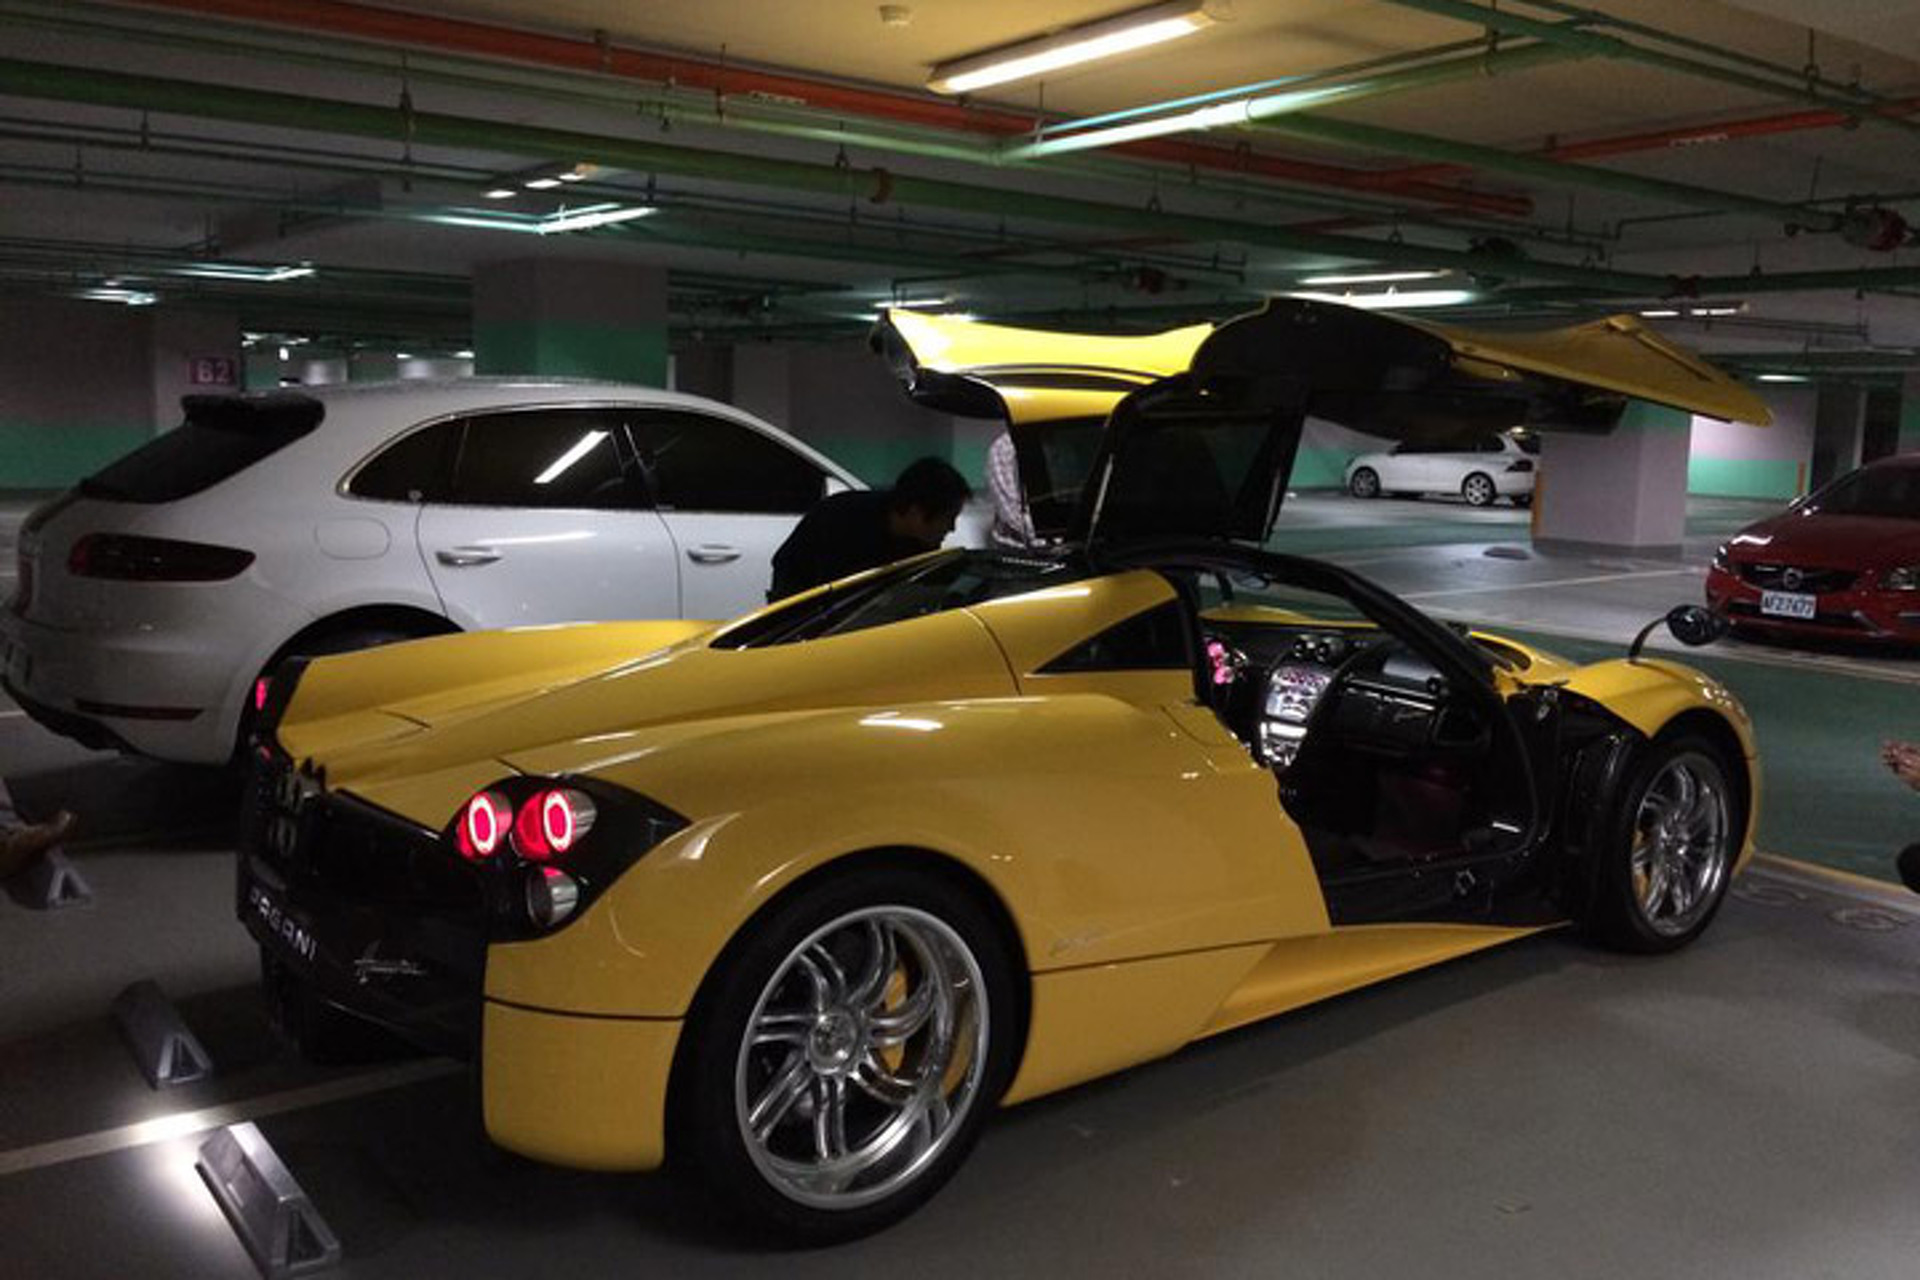 A Lucky 15-Year-Old Got a Pagani Huayra on his Birthday | Motor1.com